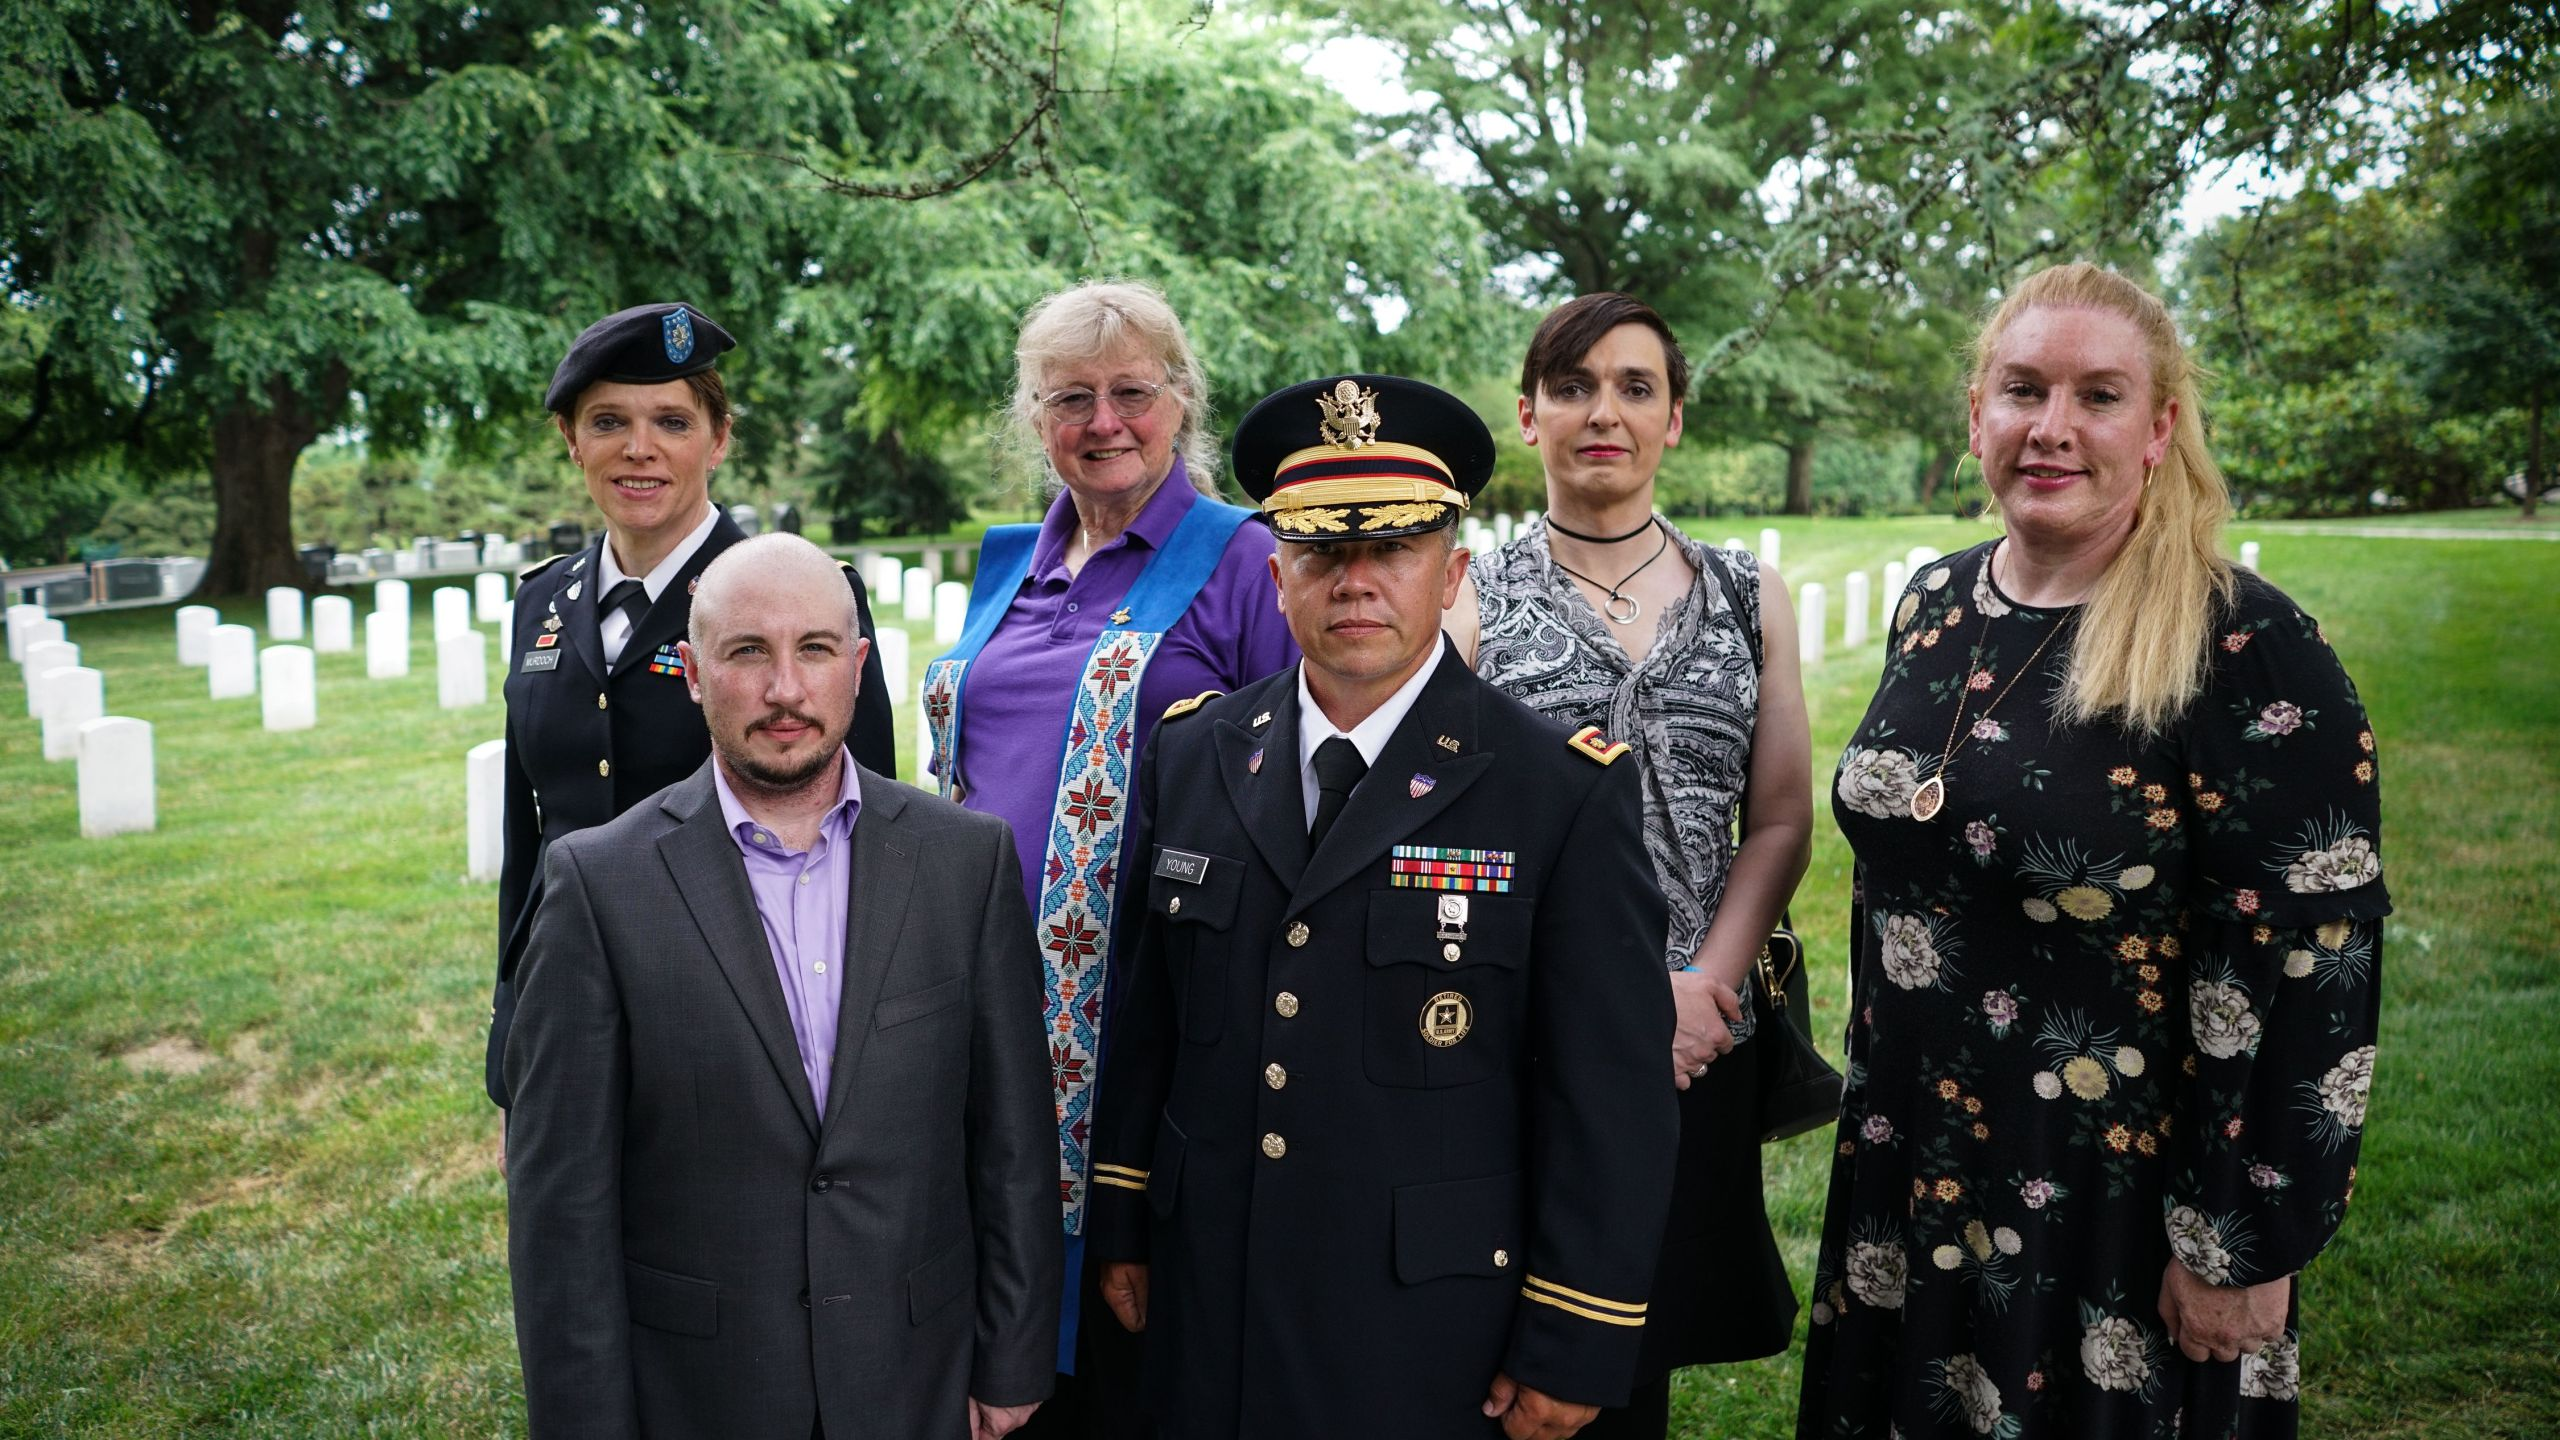 From left: Retired Army lieutenant colonel Ann Murdoch; Transgender American Veterans Association Vice President Gene Silvestri; Yvonne Cook-Riley; retired Army major and Transgender American Veterans Association President Evan Young; petty officer first class Alice Ashton; and retired Air Force major Nella Ludlow pose for a photo in Arlington National Cemetery after attending a wreath laying ceremony at the Tomb of the Unknown Soldier on June 8, 2018. (Credit: MANDEL NGAN/AFP/Getty Images)